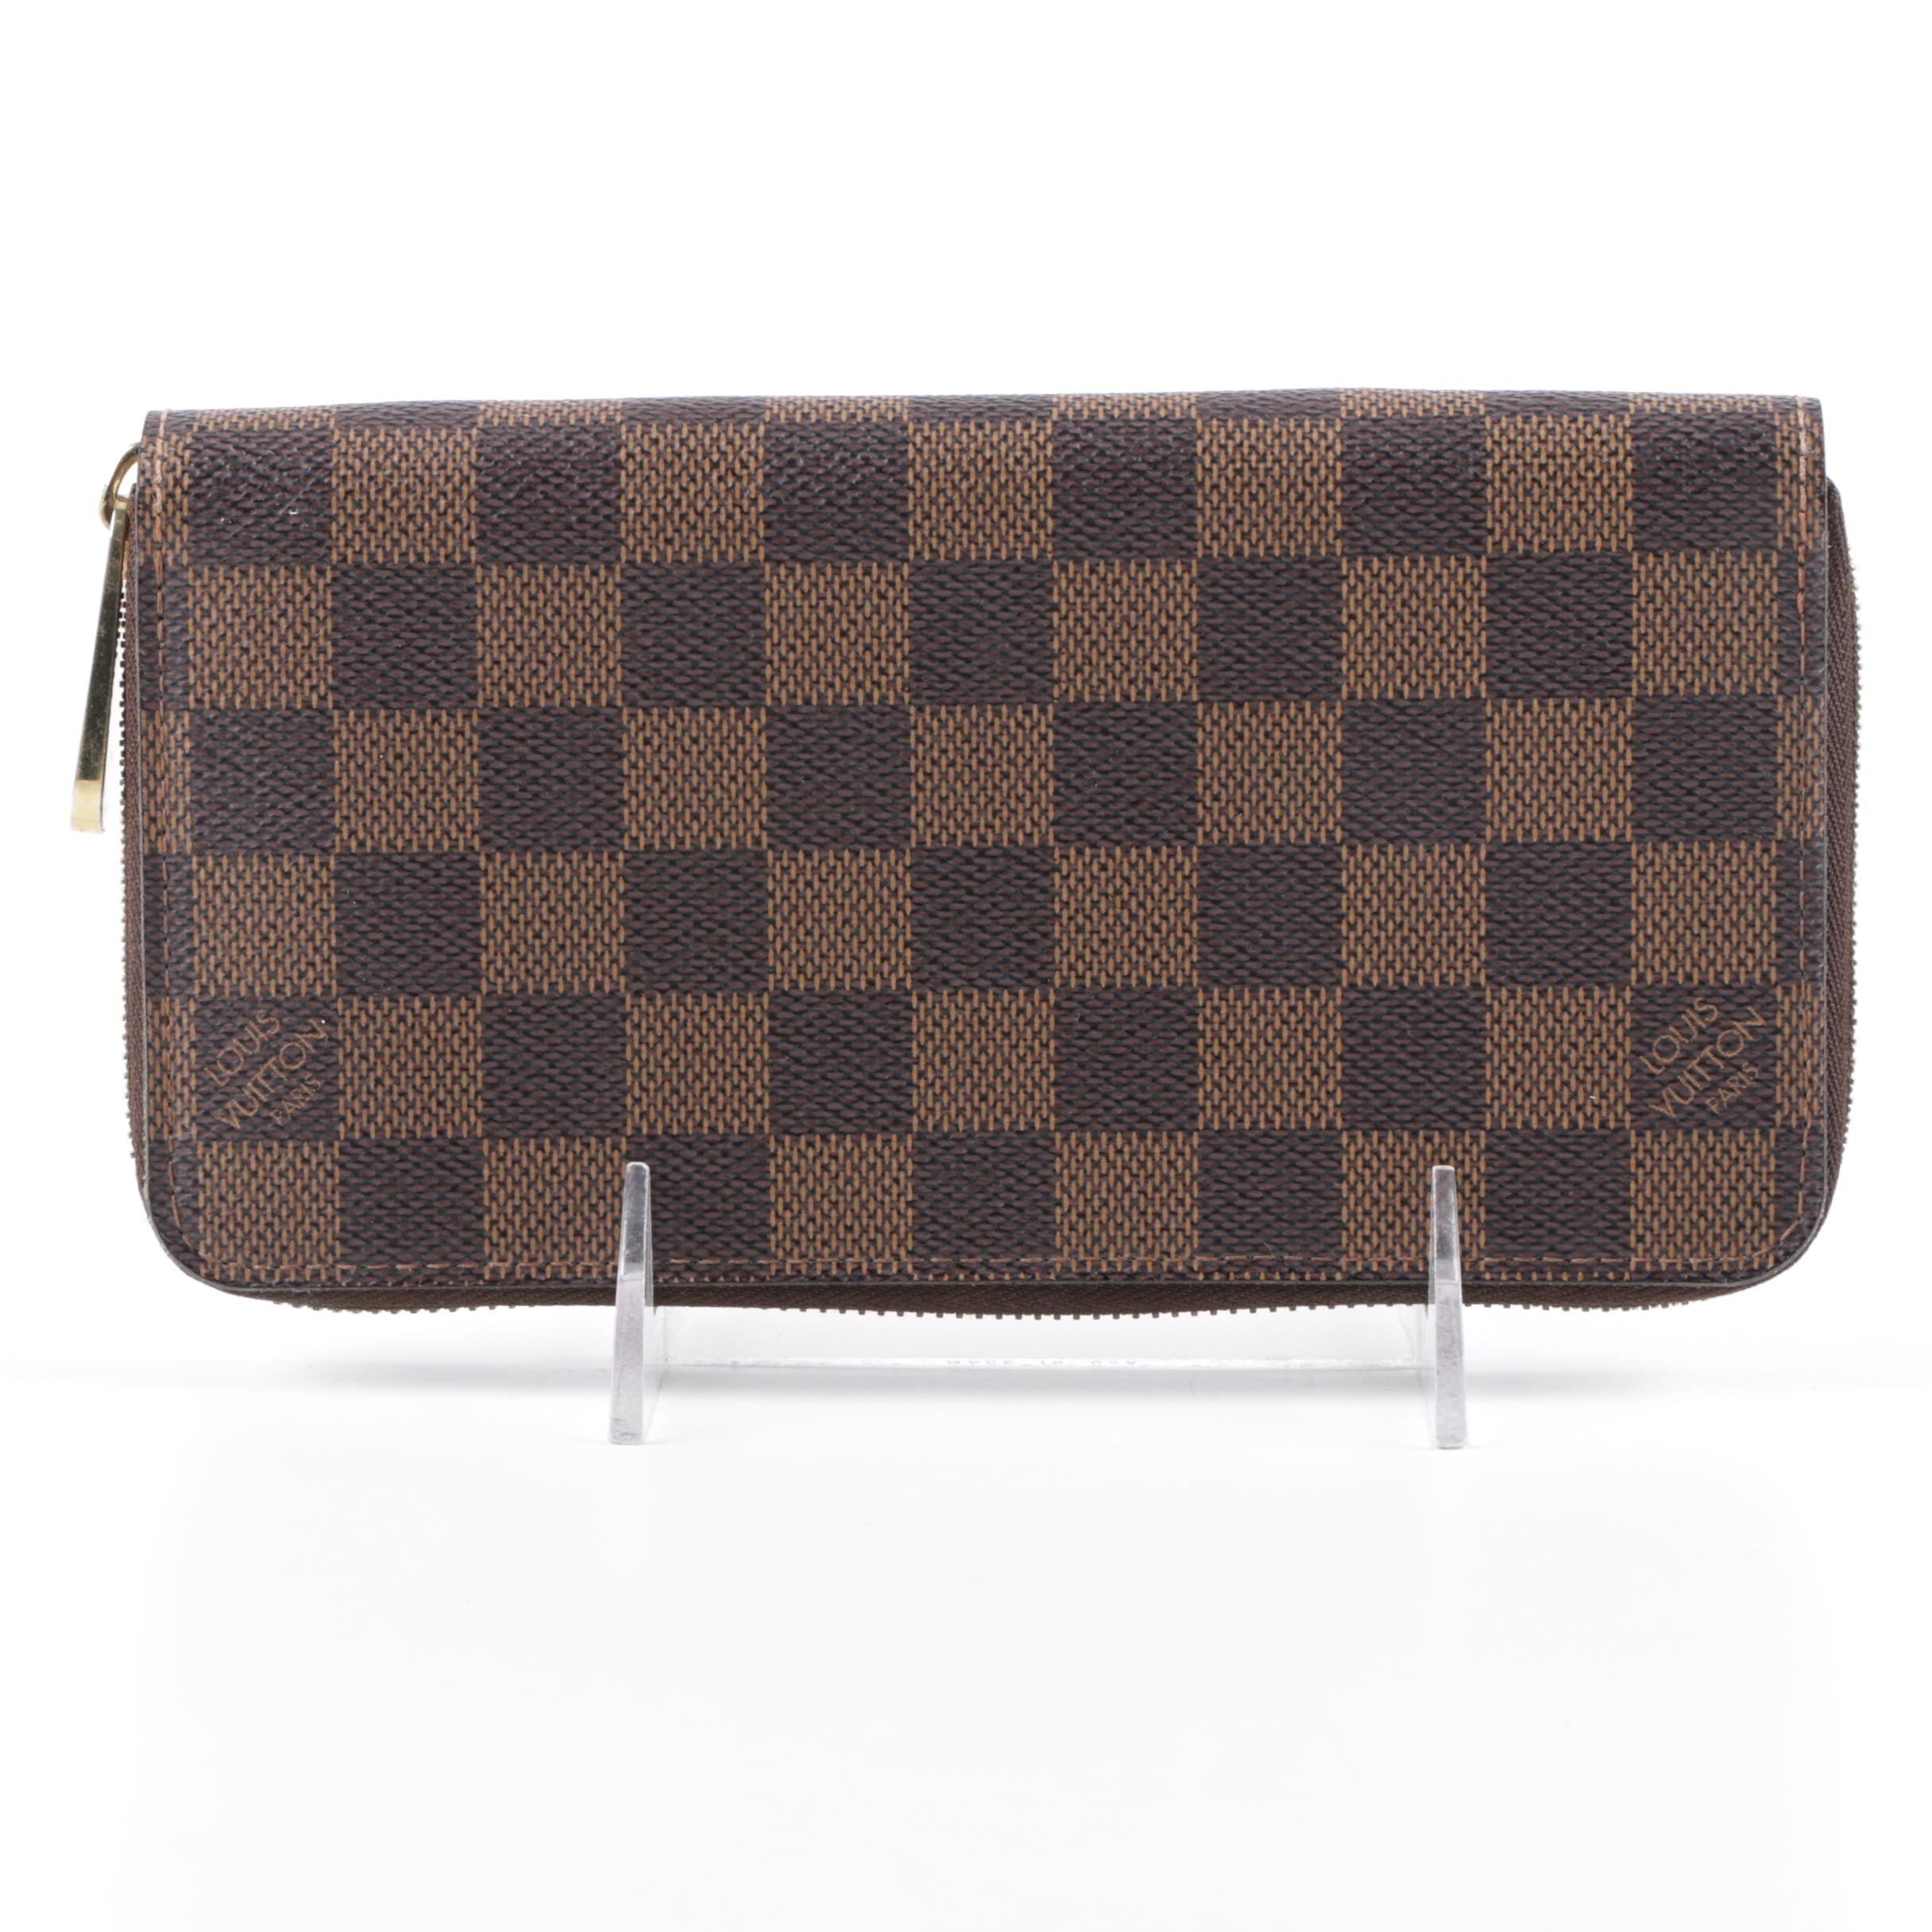 Louis Vuitton of Paris Damier Ebene Wallet